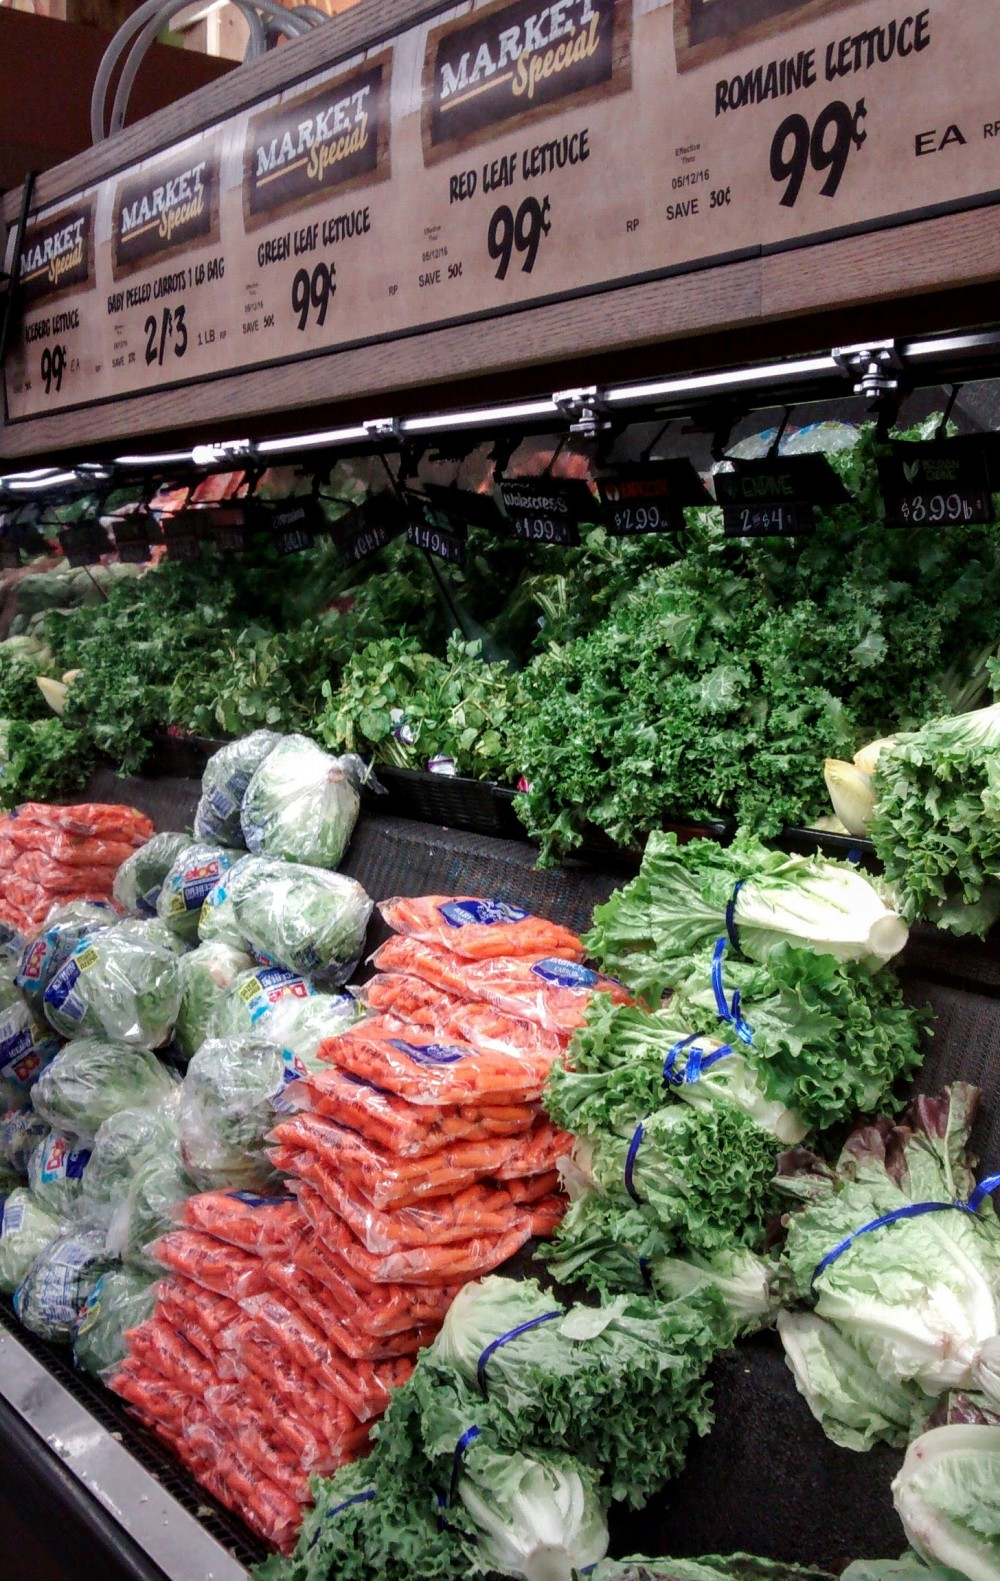 Fresh Thyme Market: My First Visit, and Why I'll Be Back #freshthymemarket #freshthyme #naturalfood #organicfood #aldi #blog #ultrablog #blogger